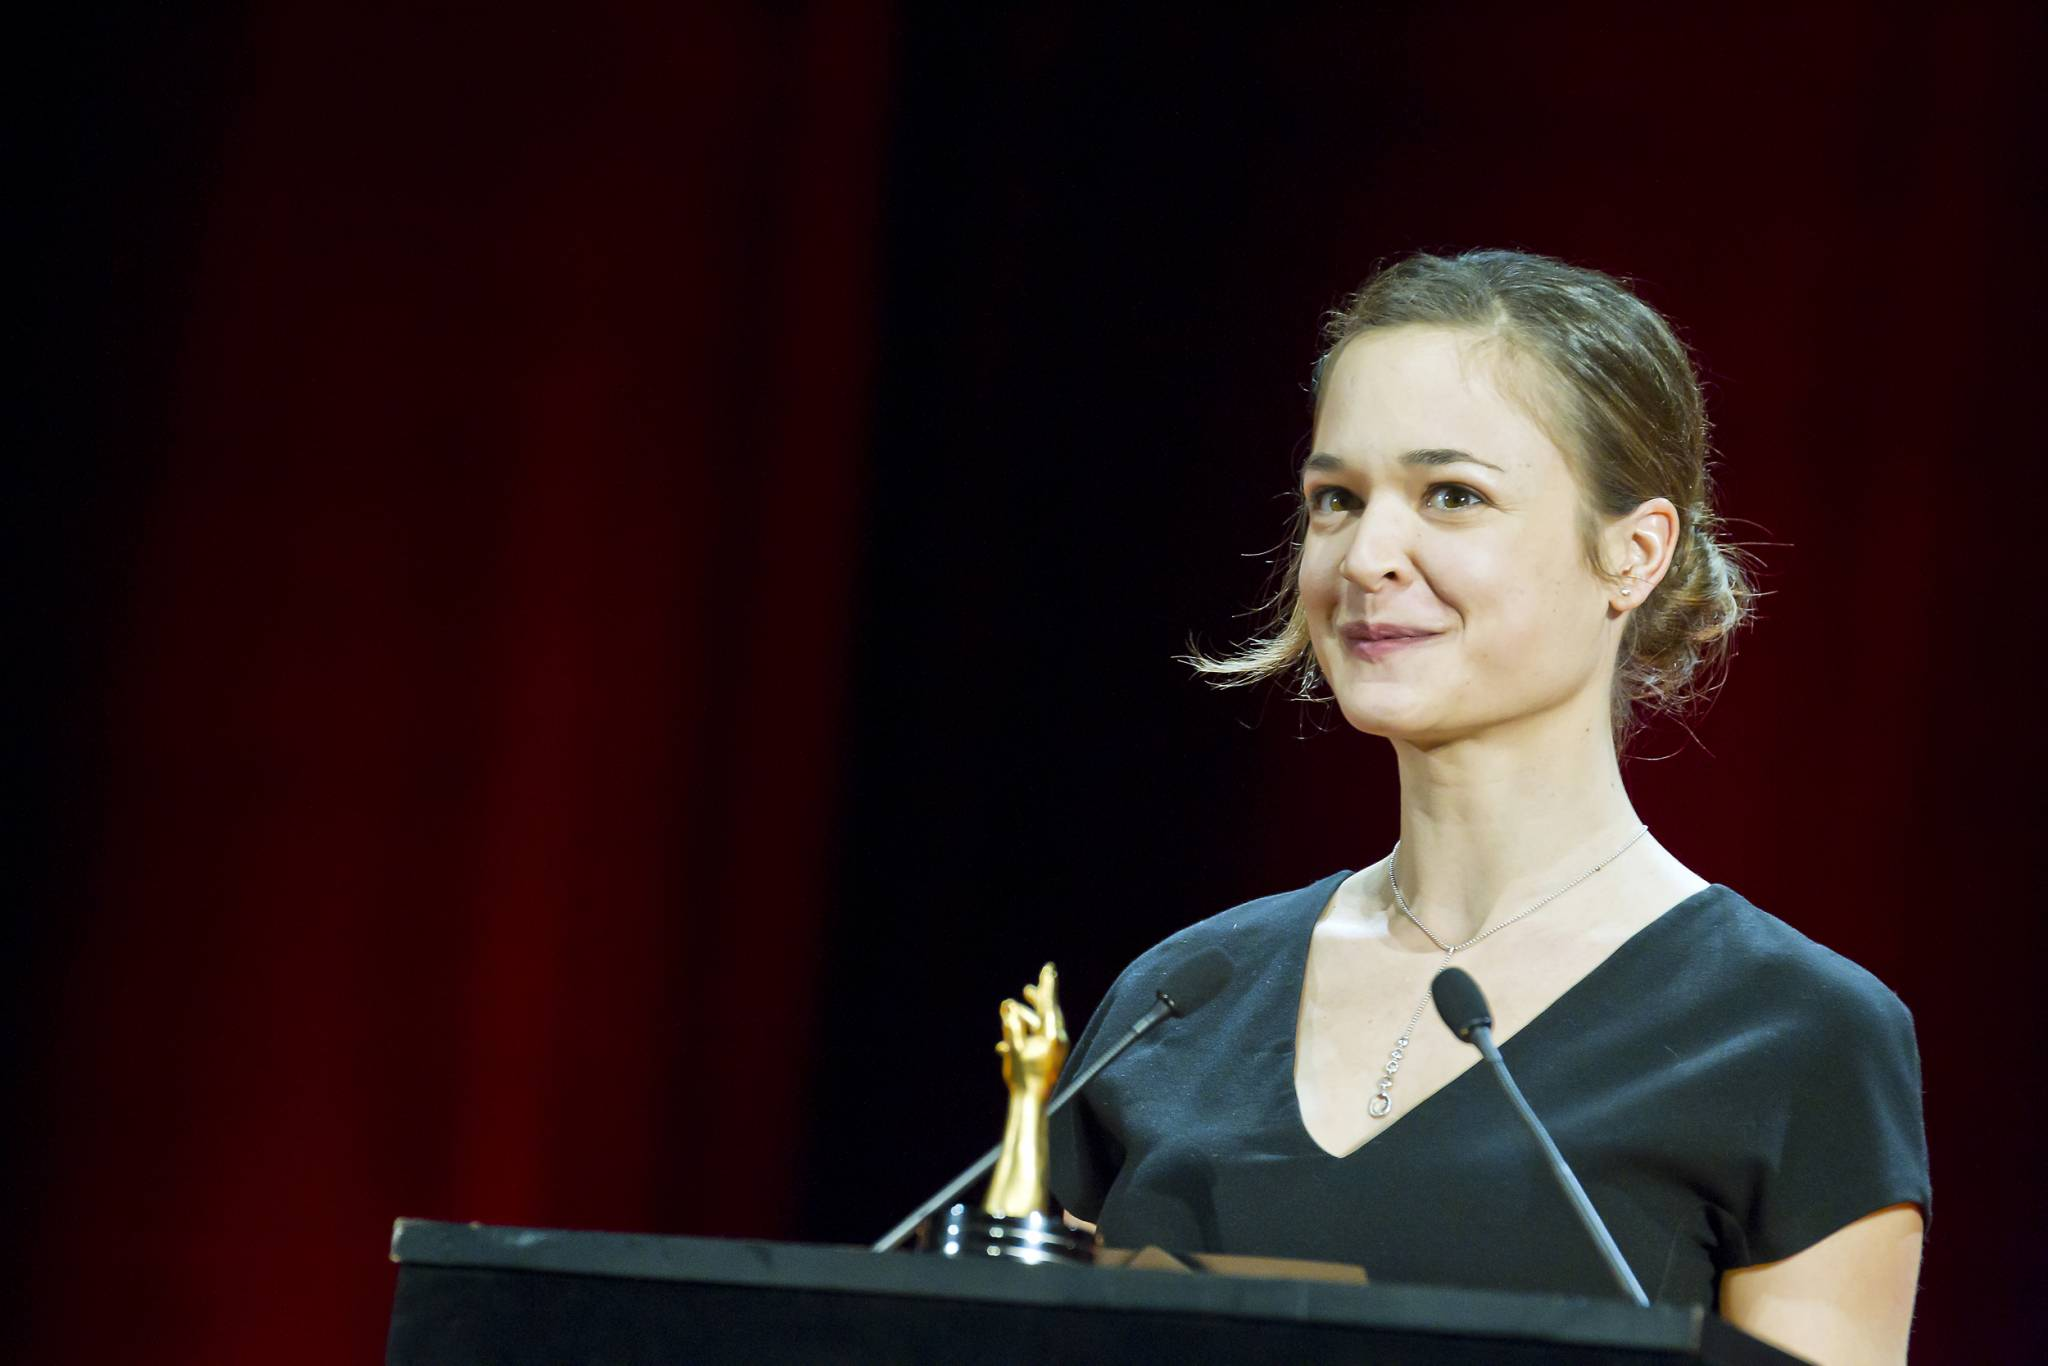 The comedian Isabelle Caillat announces the 2011 Ladies' Watch Prize